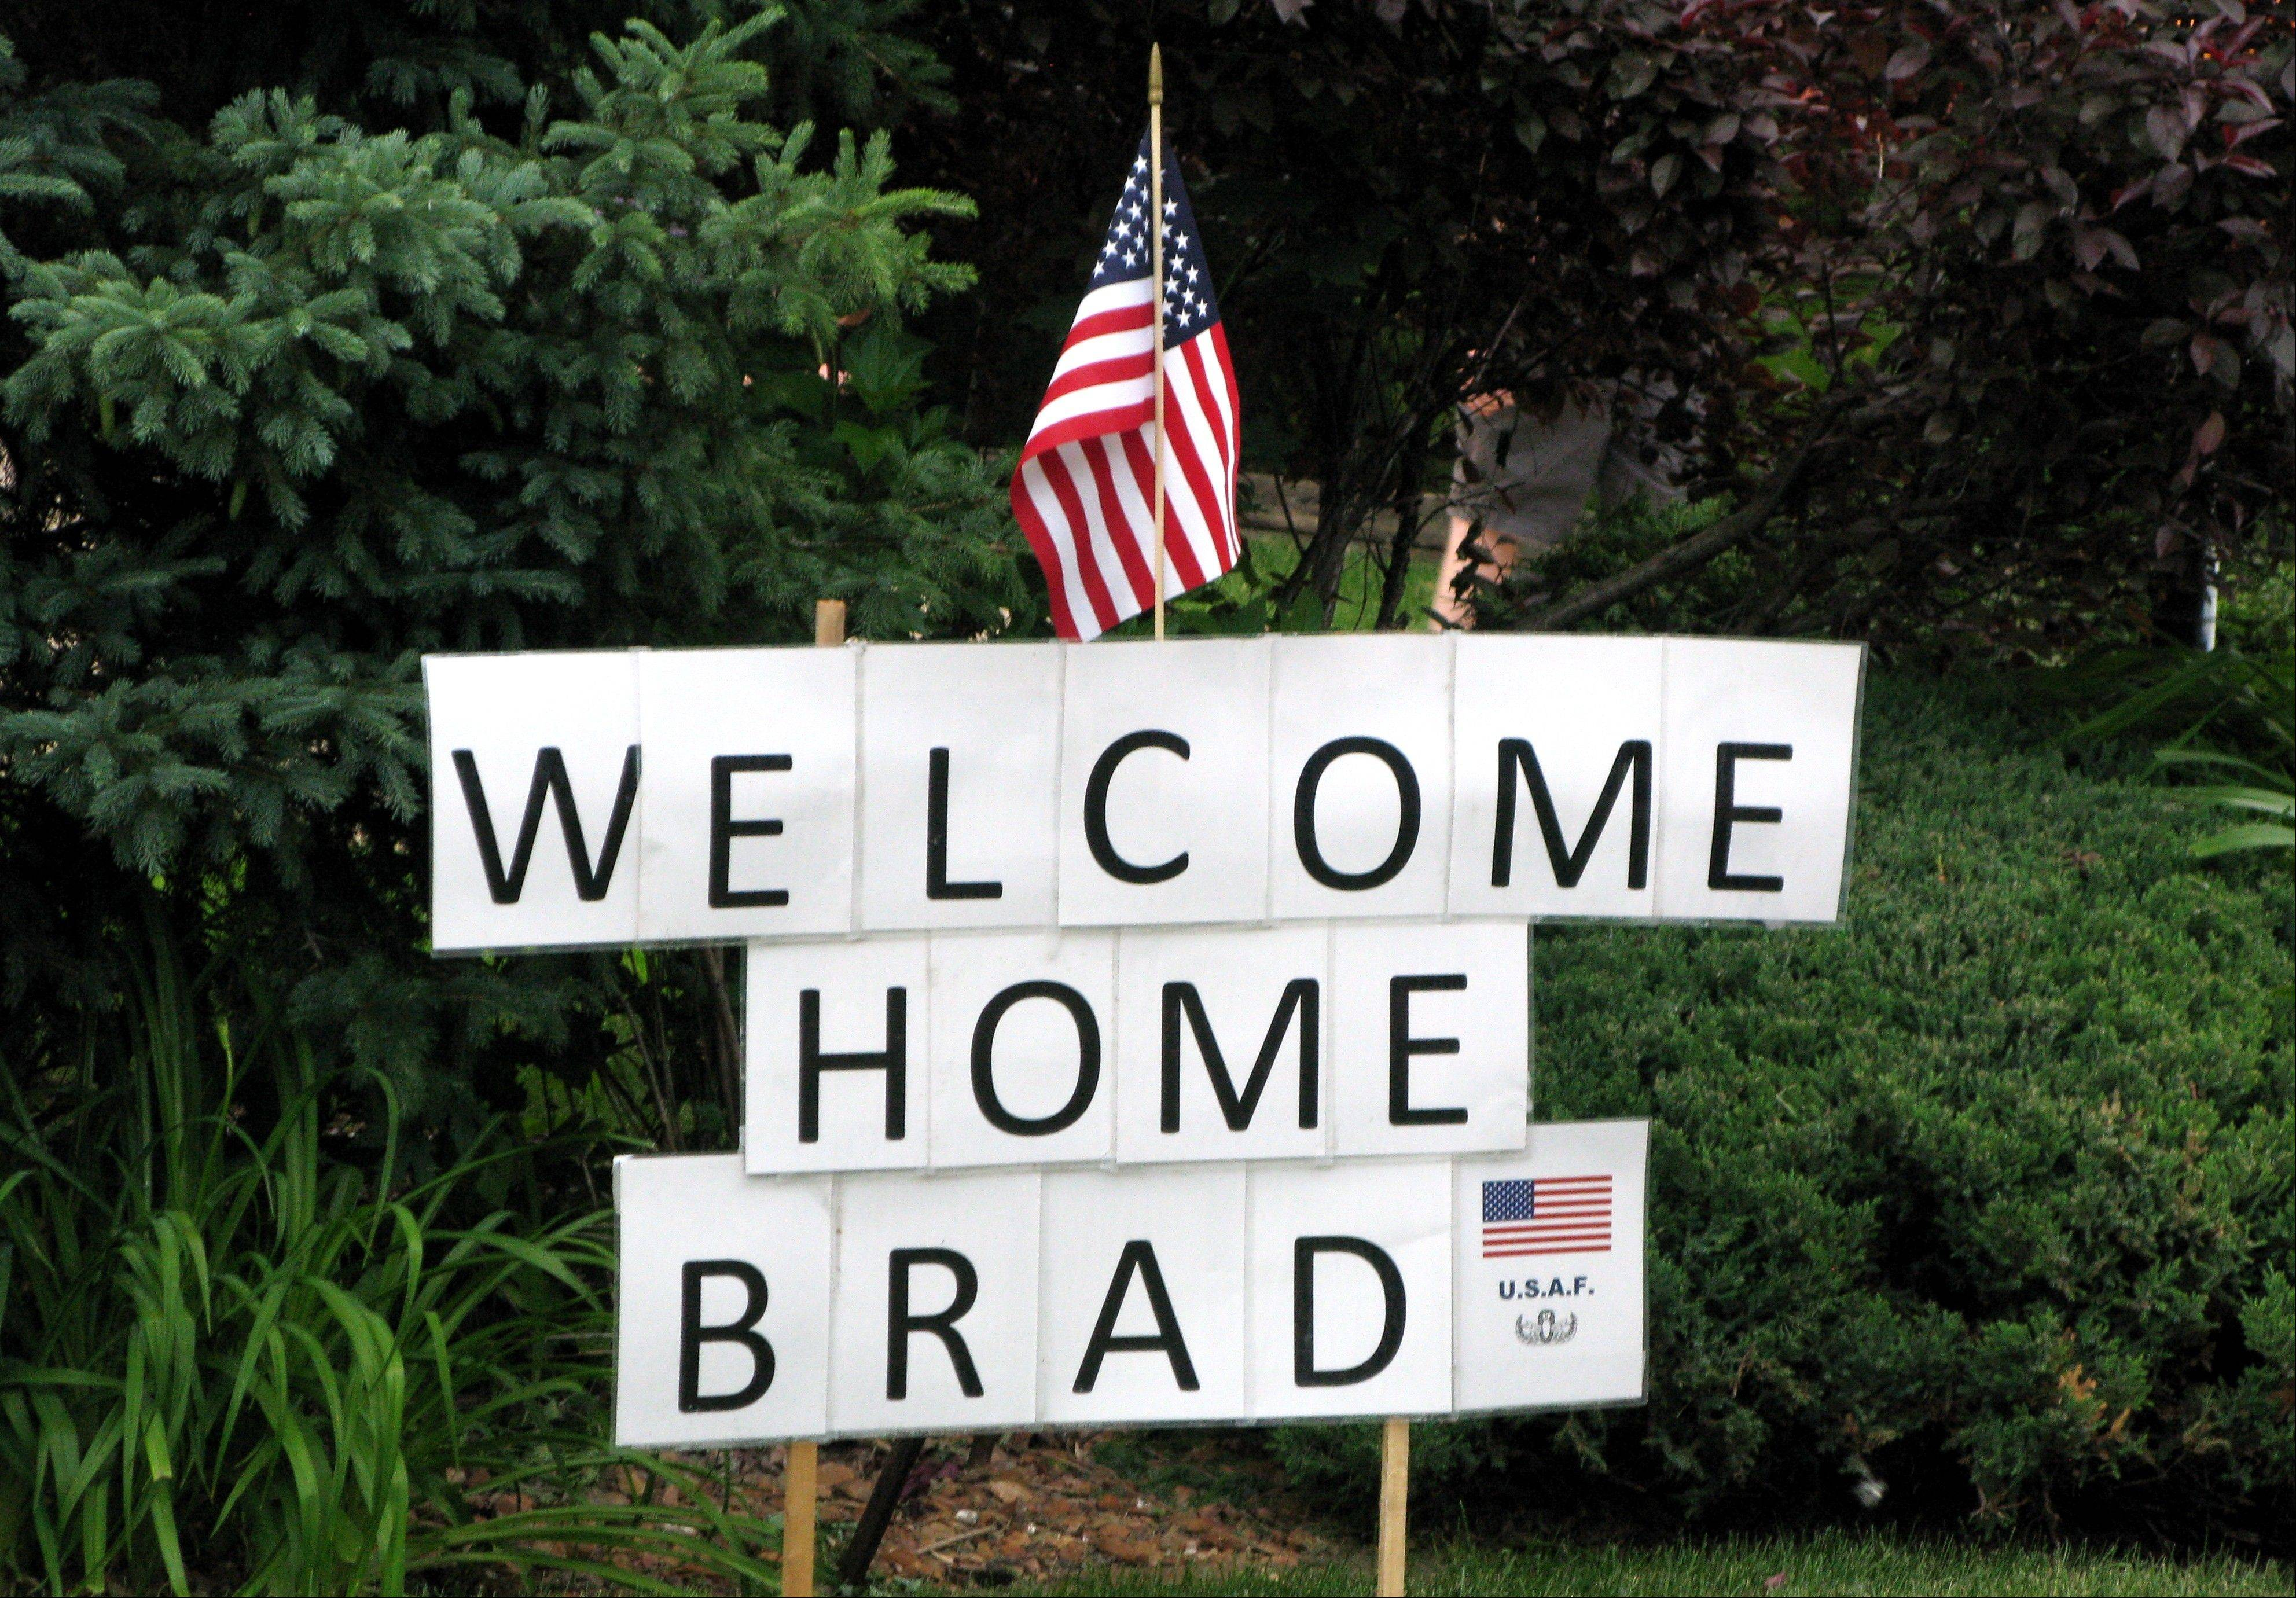 Welcome signs, blaring horns, roaring motorcycles and multiple American flags decorated the area for Bradley Taylor's return from active duty overseas.